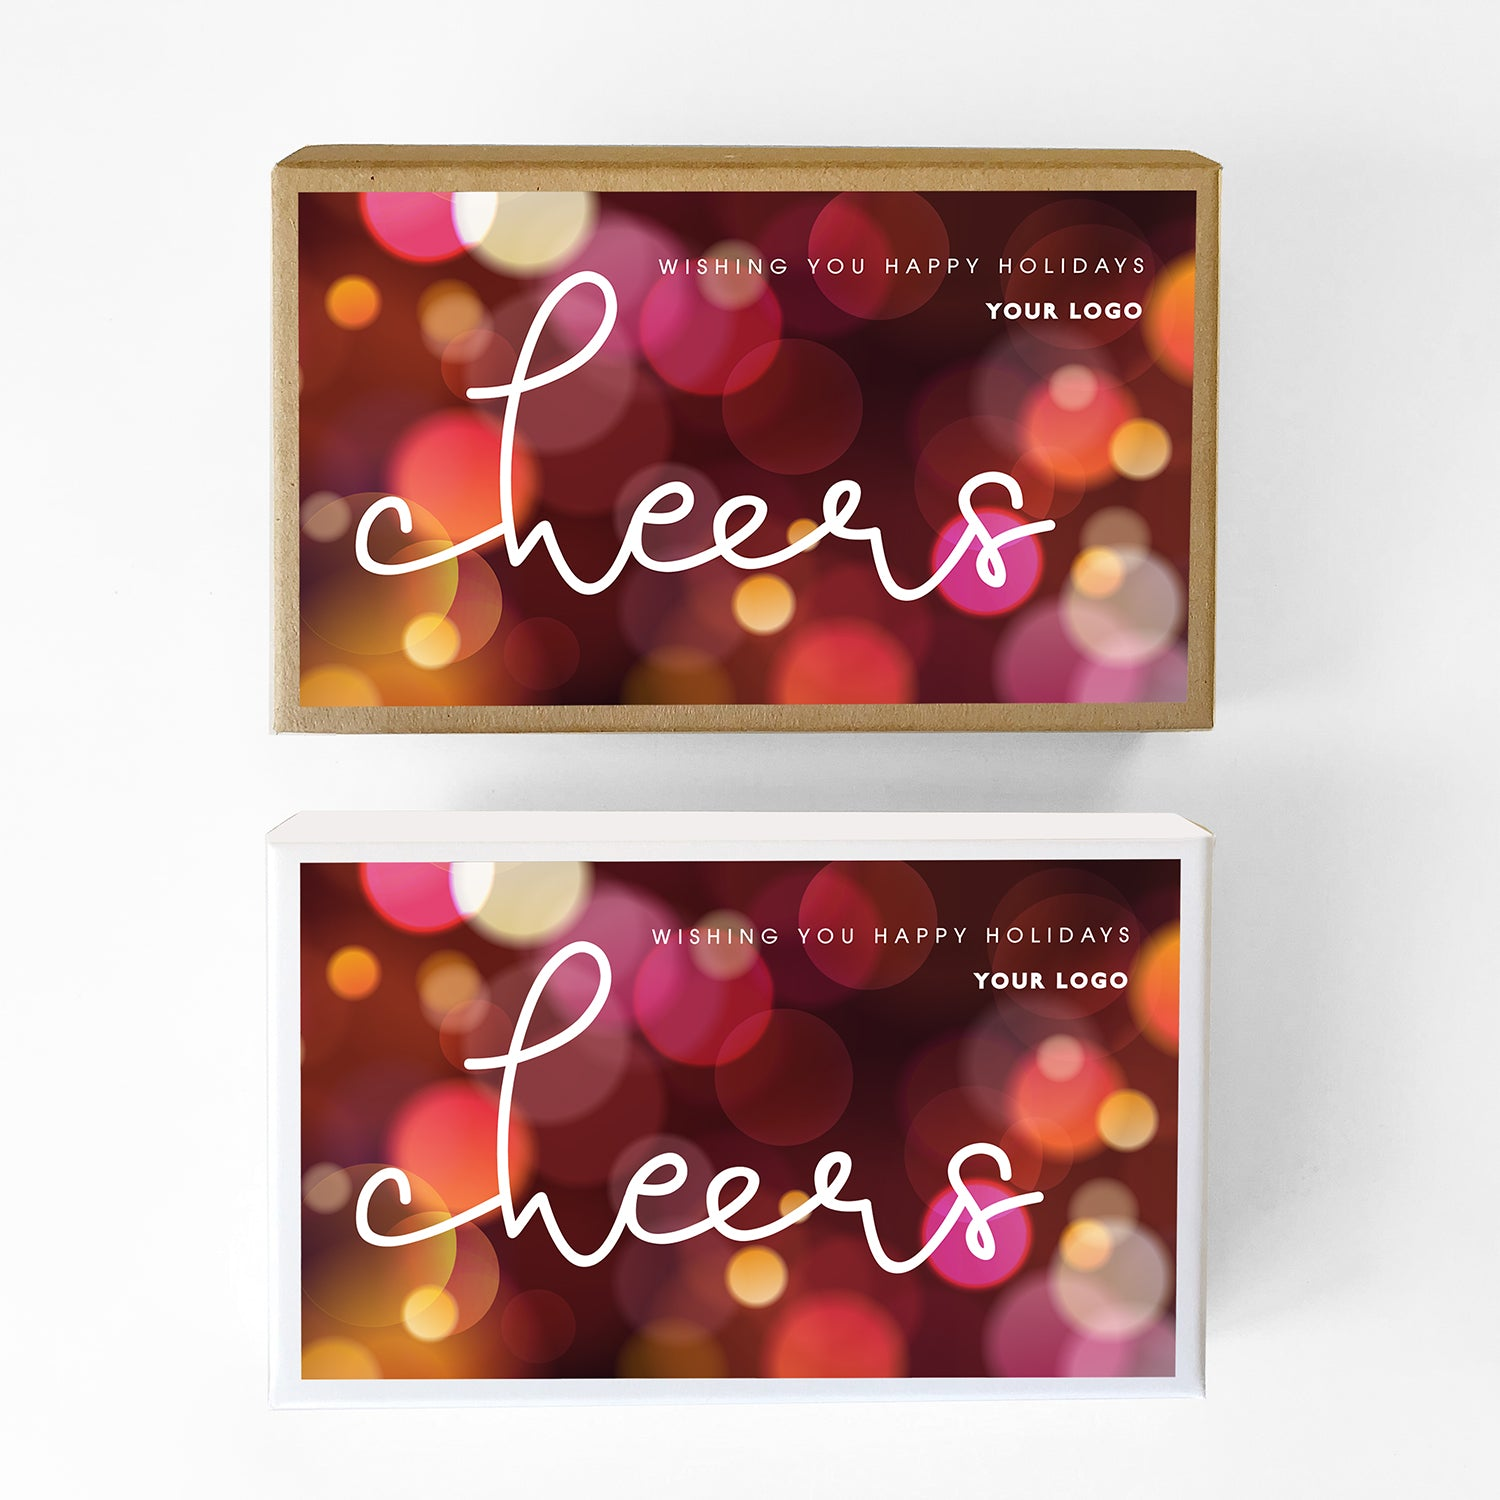 Cheers Custom Caramel Holiday Gift Box